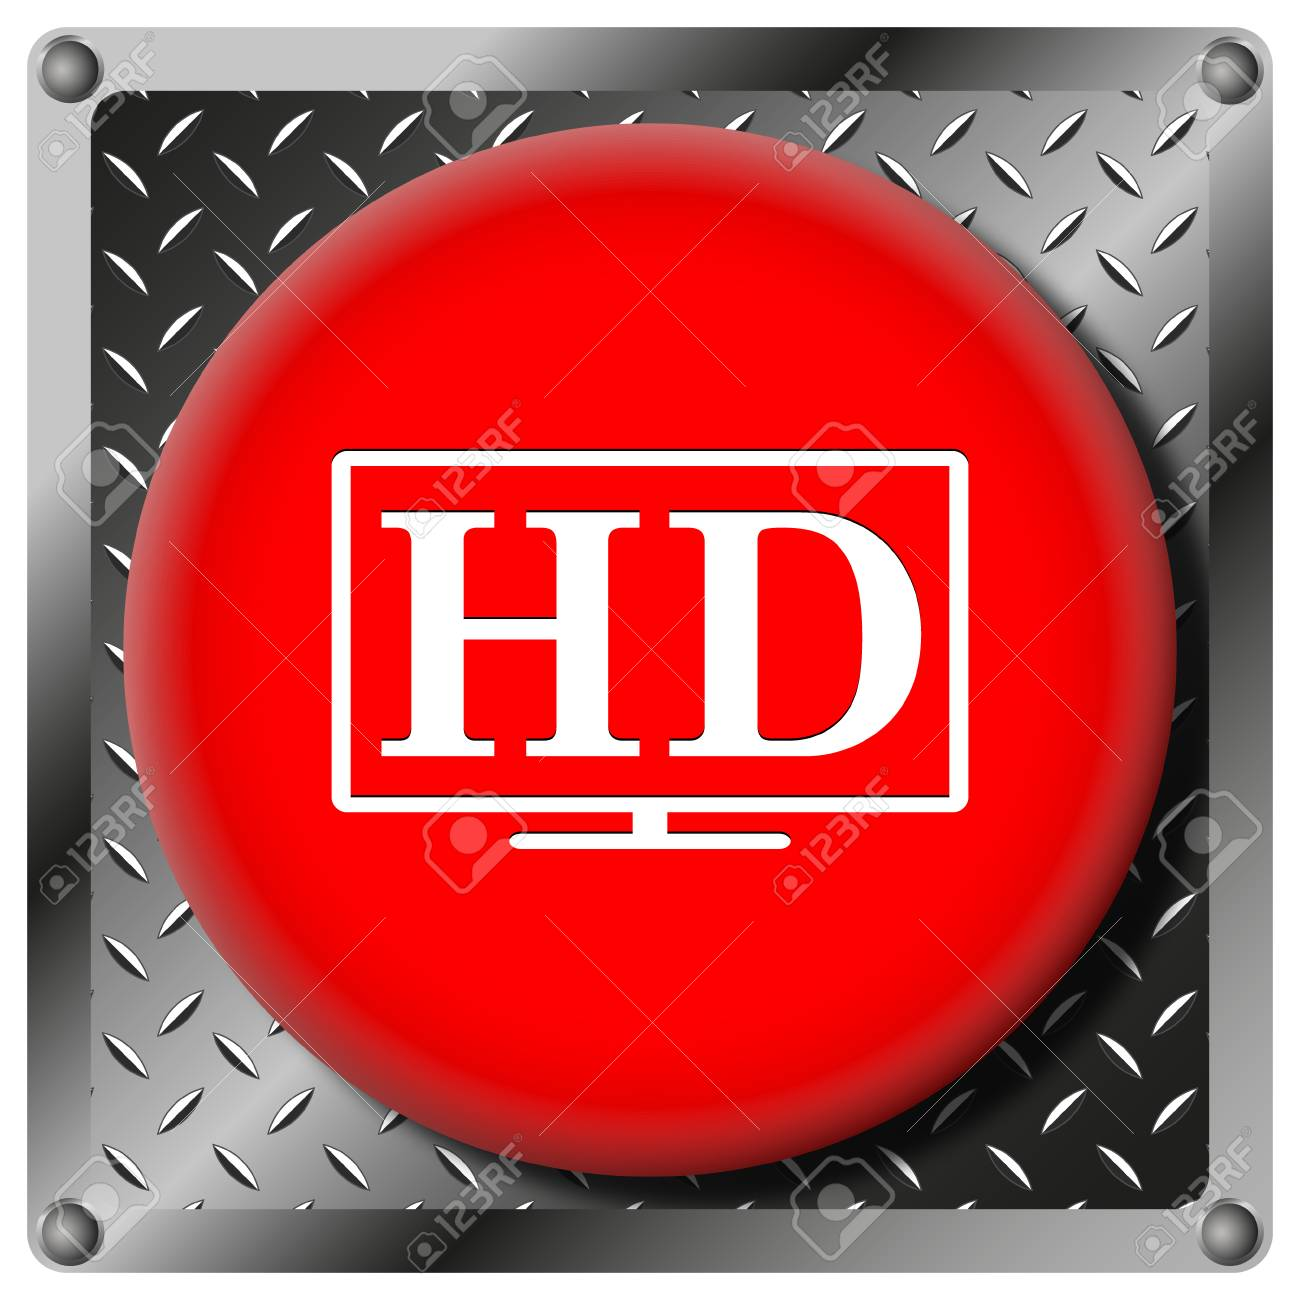 Square icon with white design on red plastic and metallic background Stock Photo - 22227750